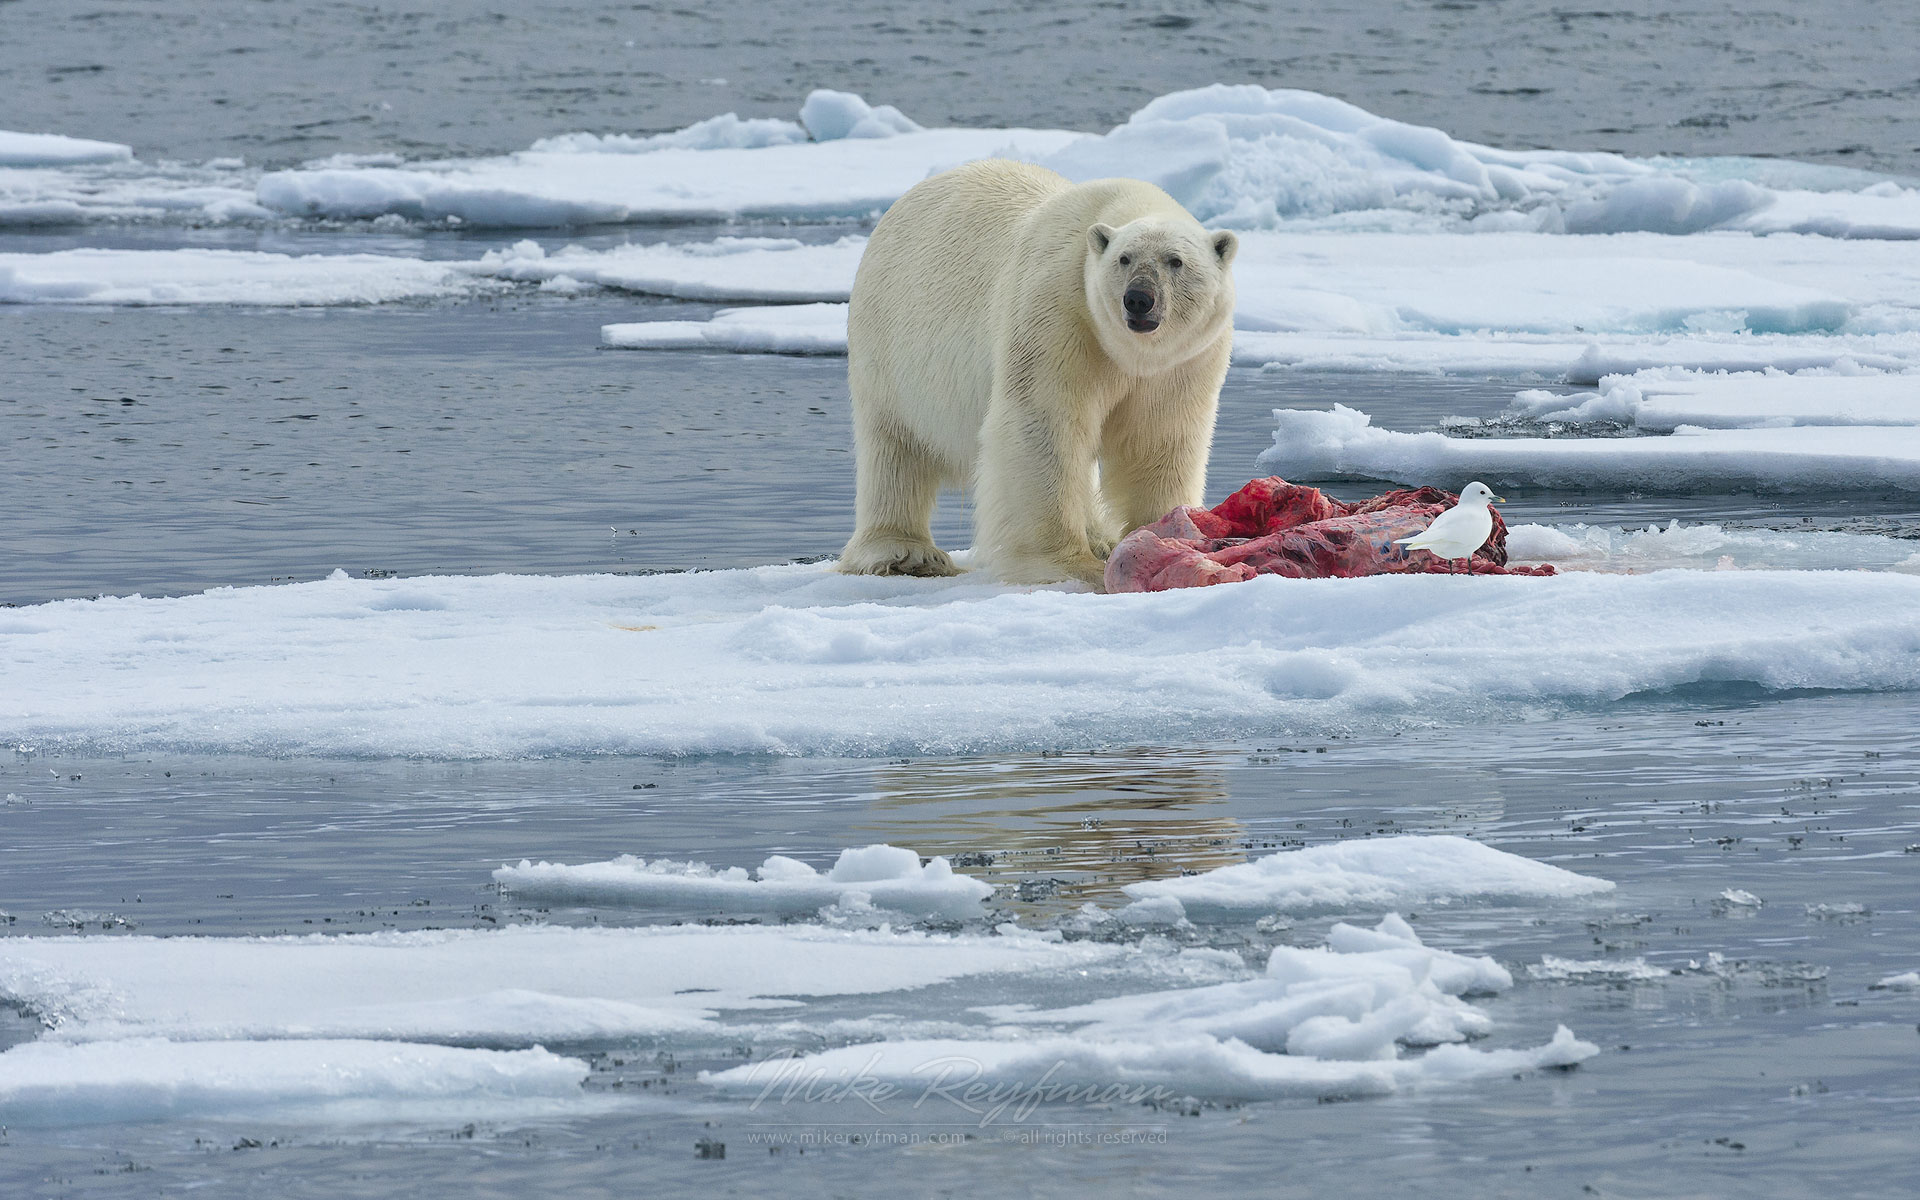 Polar bear with seal kill on an ice floe. Svalbard, Norway. 81st parallel North. - Polar-Bears-Svalbard-Spitsbergen-Norway - Mike Reyfman Photography